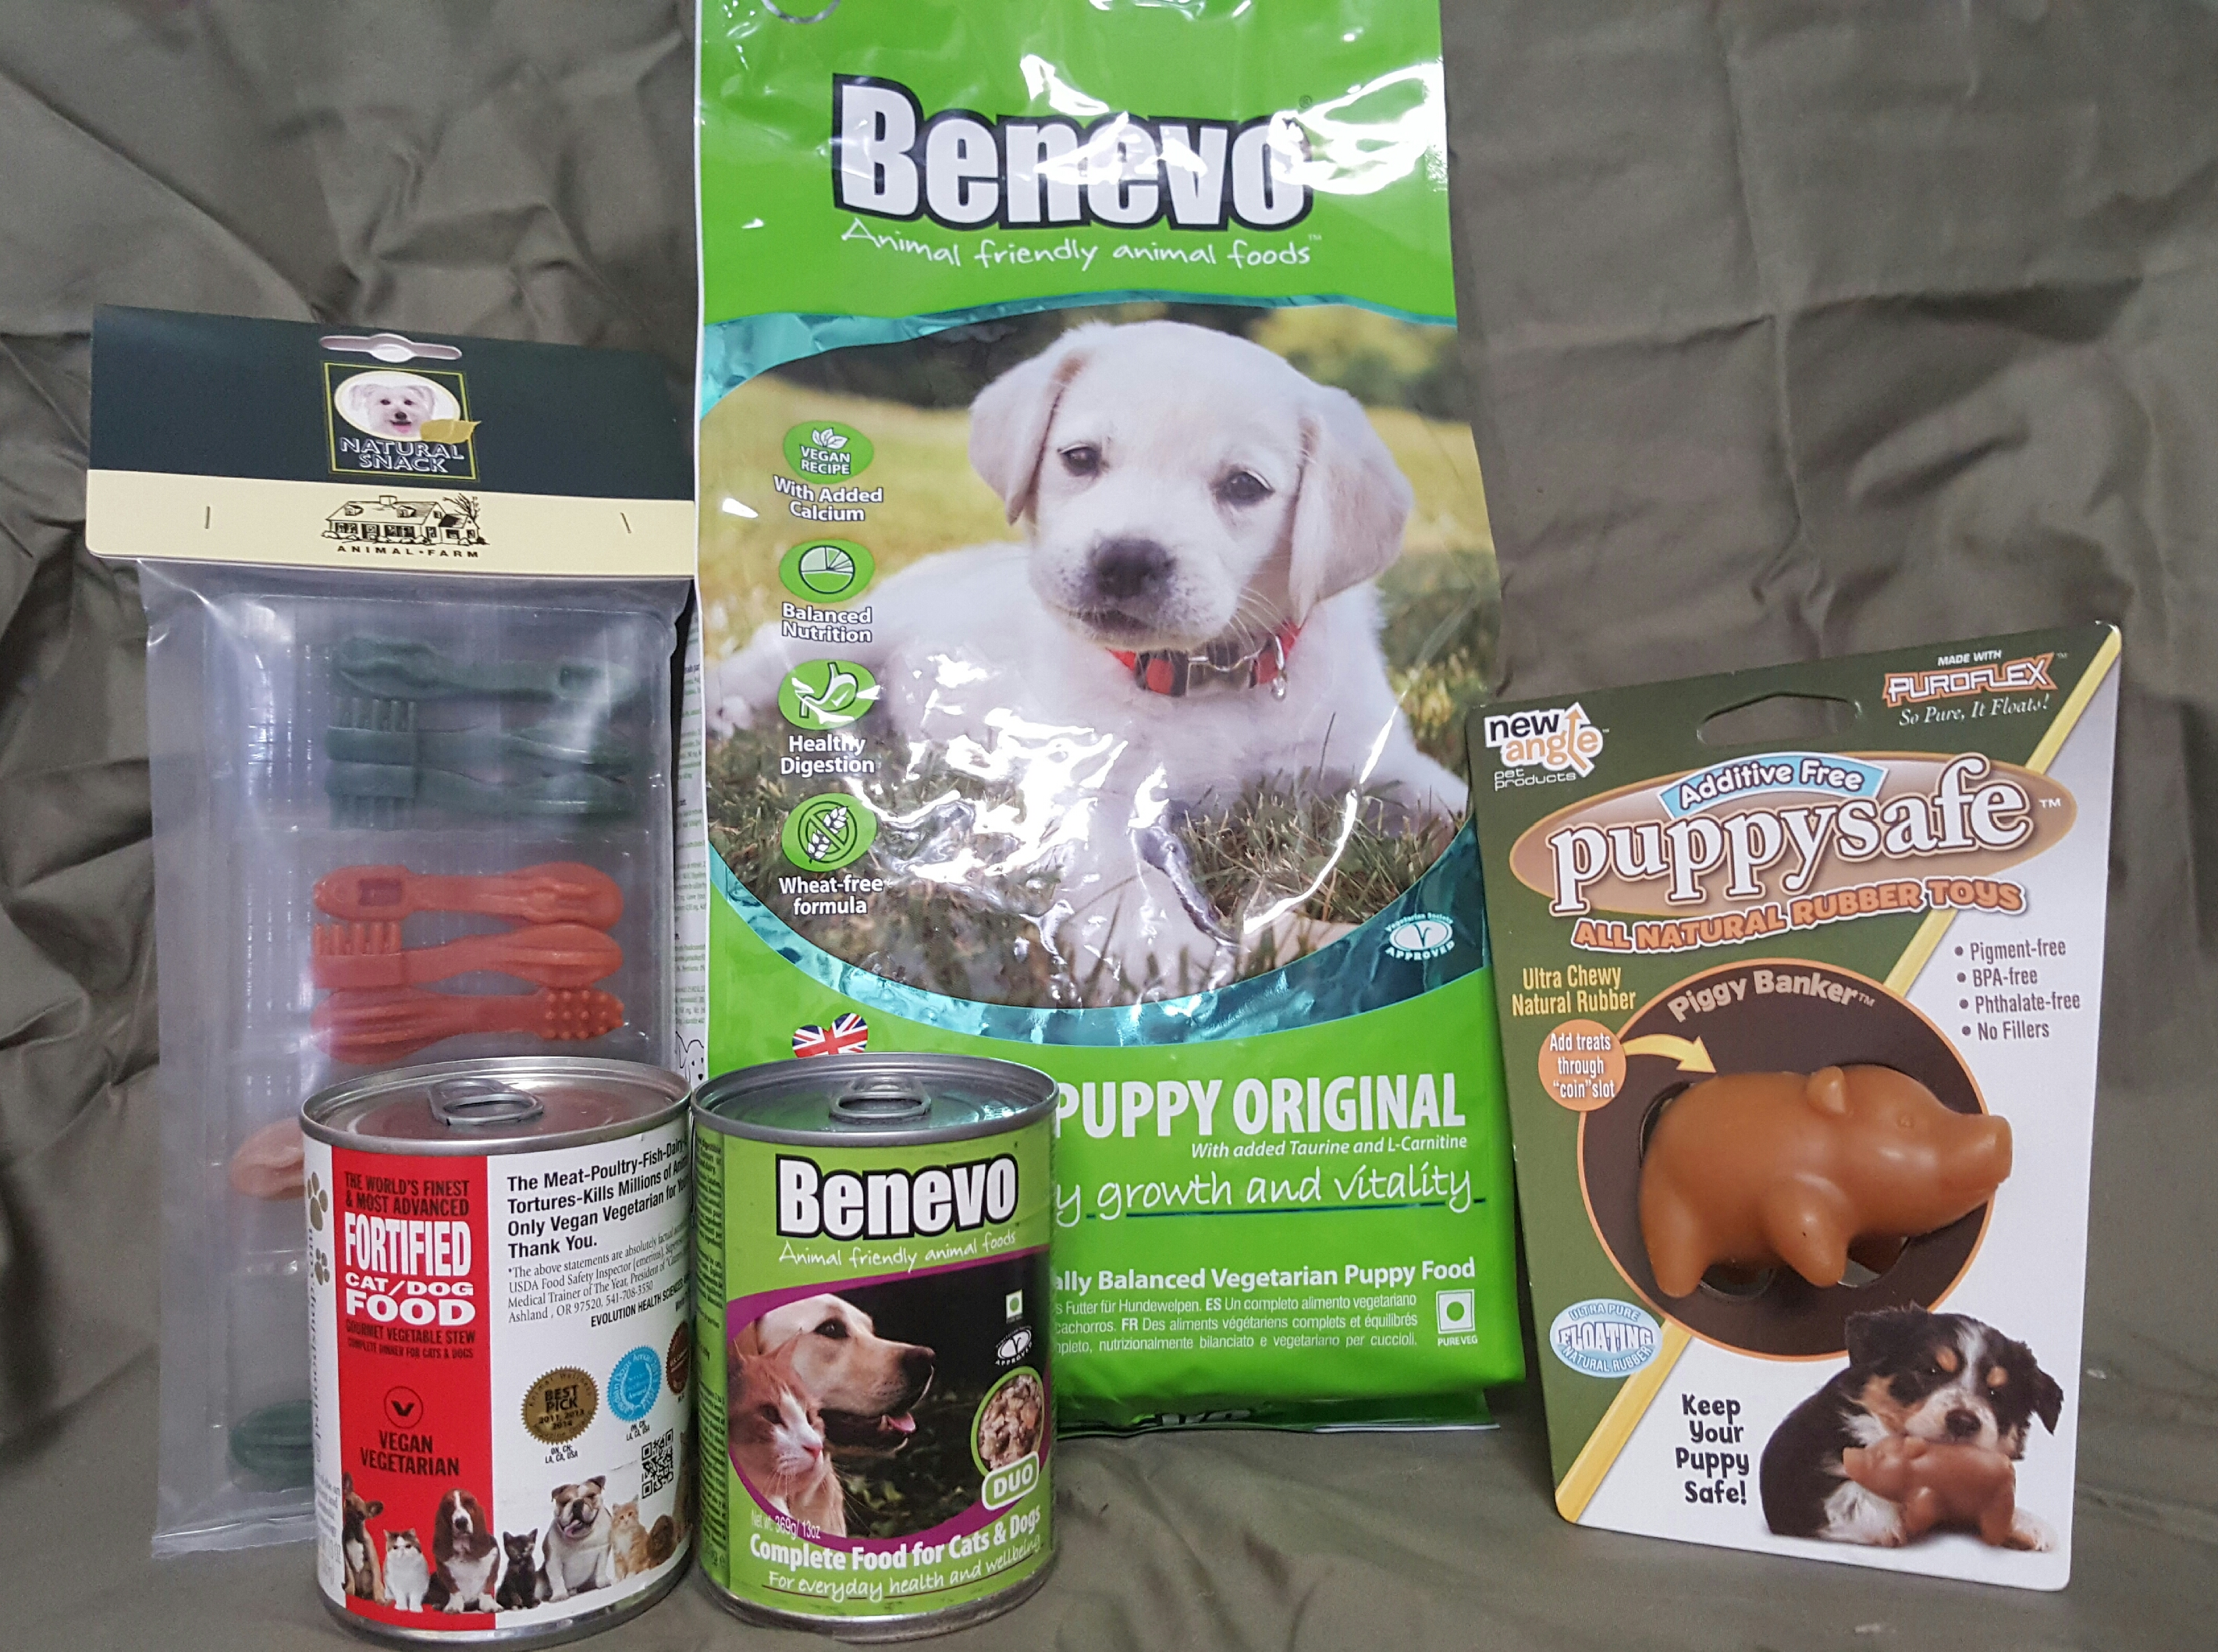 Vegan Puppy Starter Kit